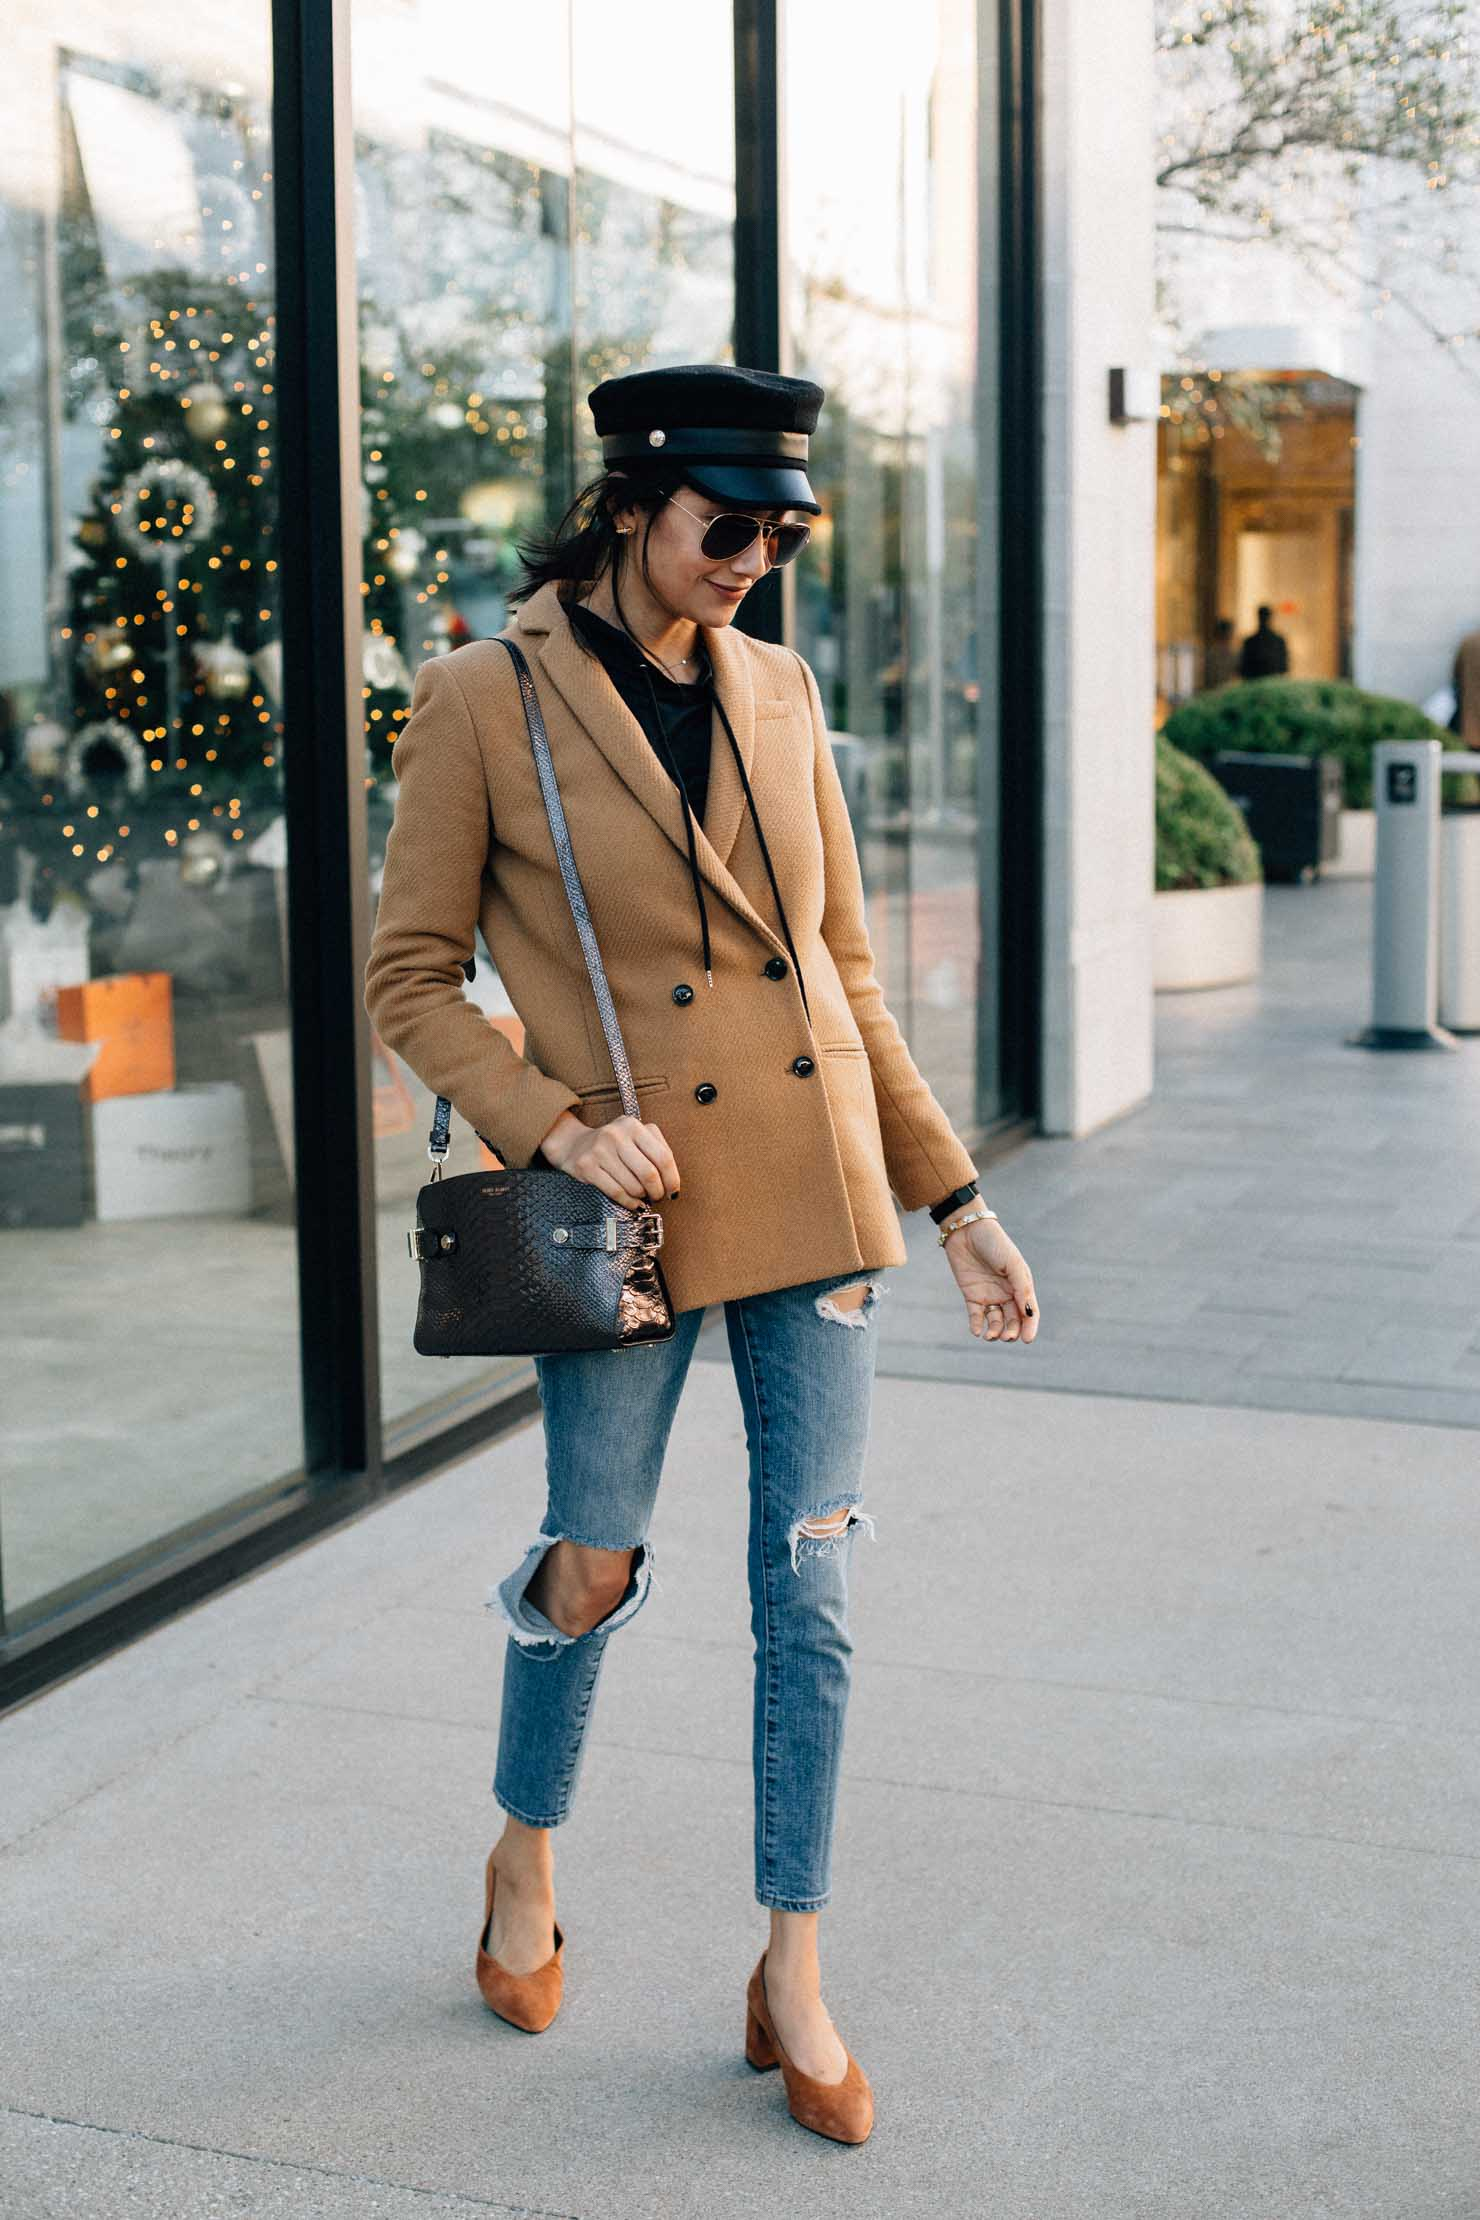 style blogger Lilly Beltran wearing a camel wool coat, ripped skinny jeans & suede pumps for a chic fall look